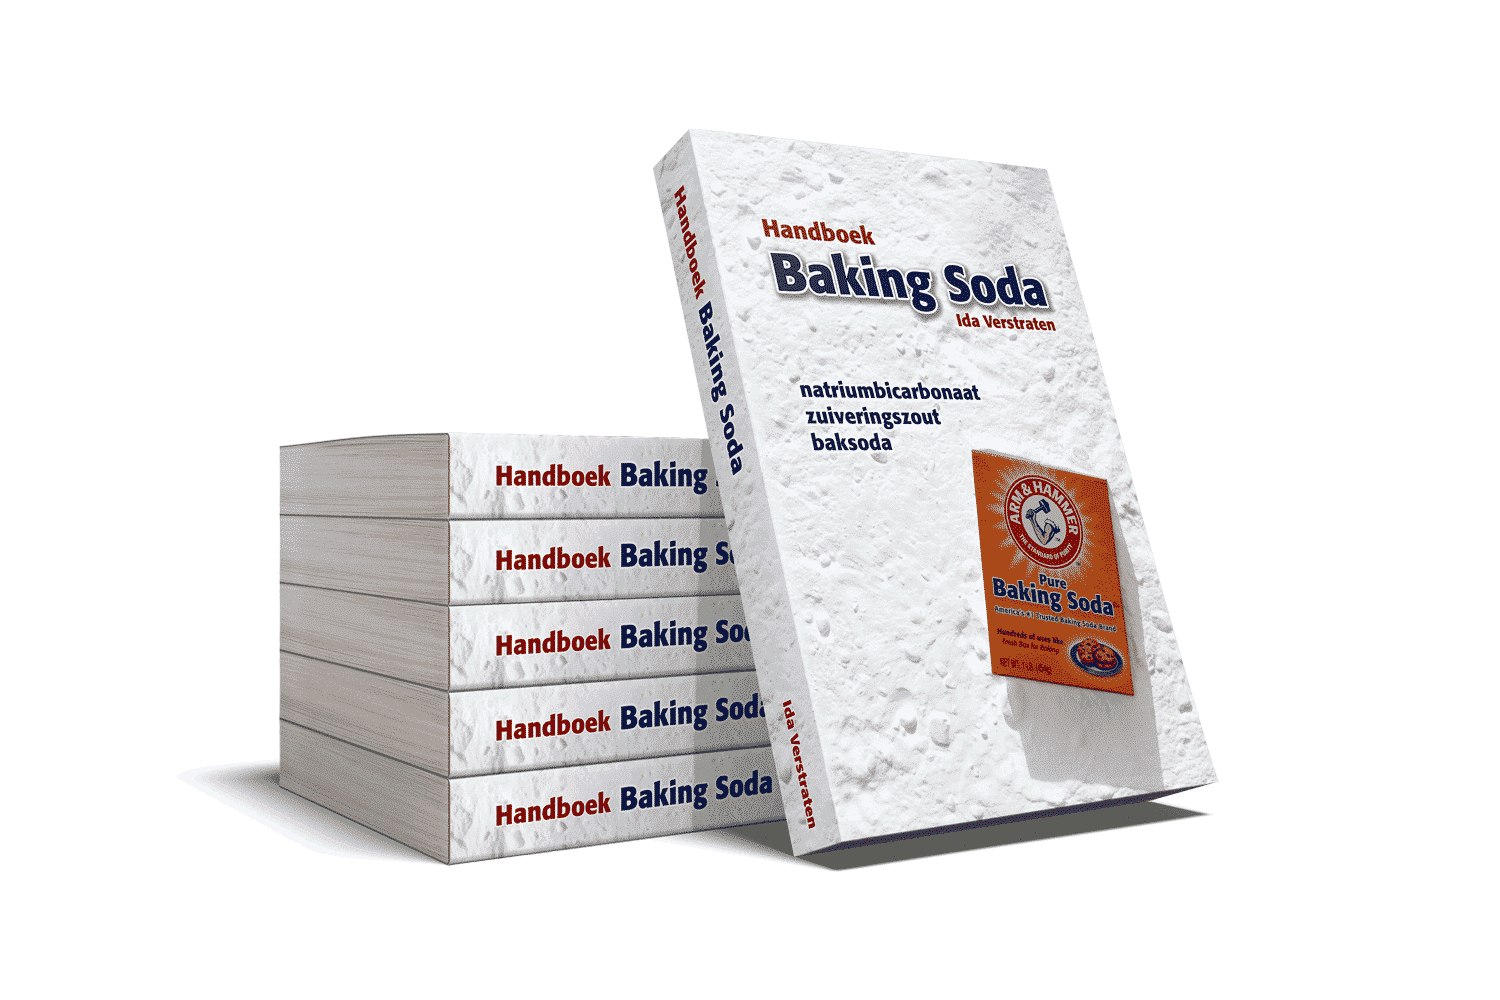 baking-soda-handboek-03-baking-soda-nl